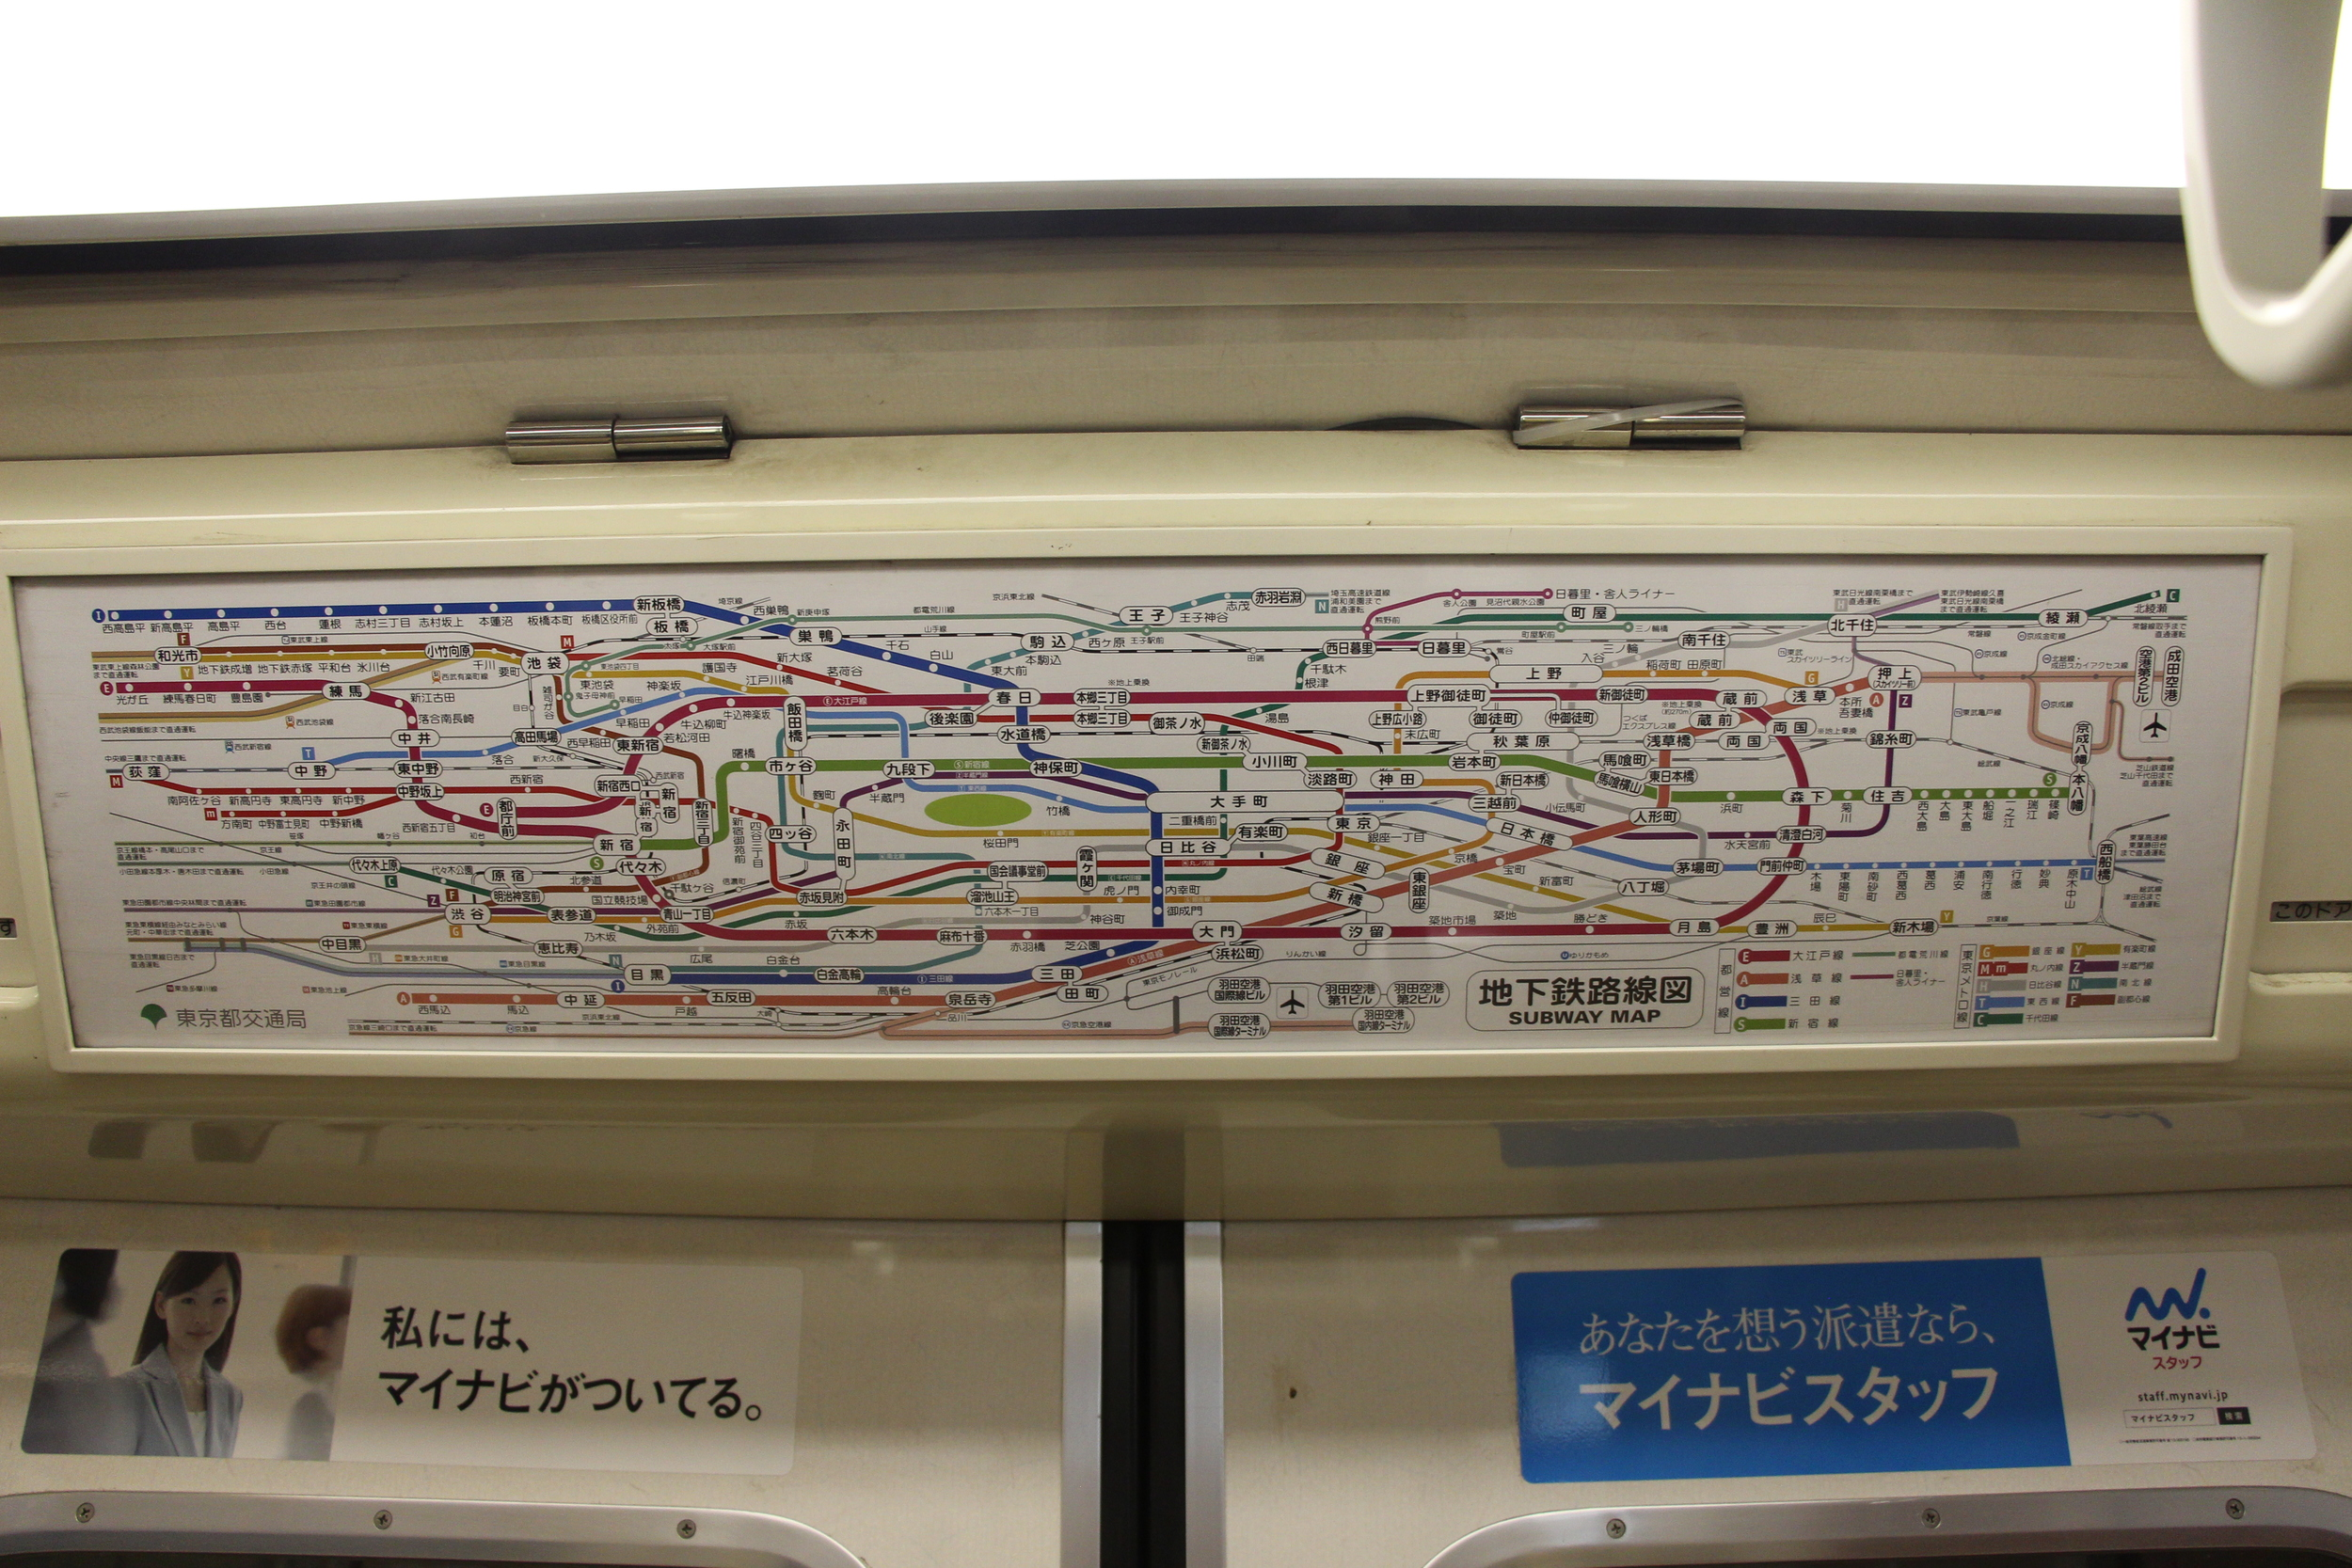 The Tokyo subway map may give you an idea of why it was a little difficult finding our way around the first night.